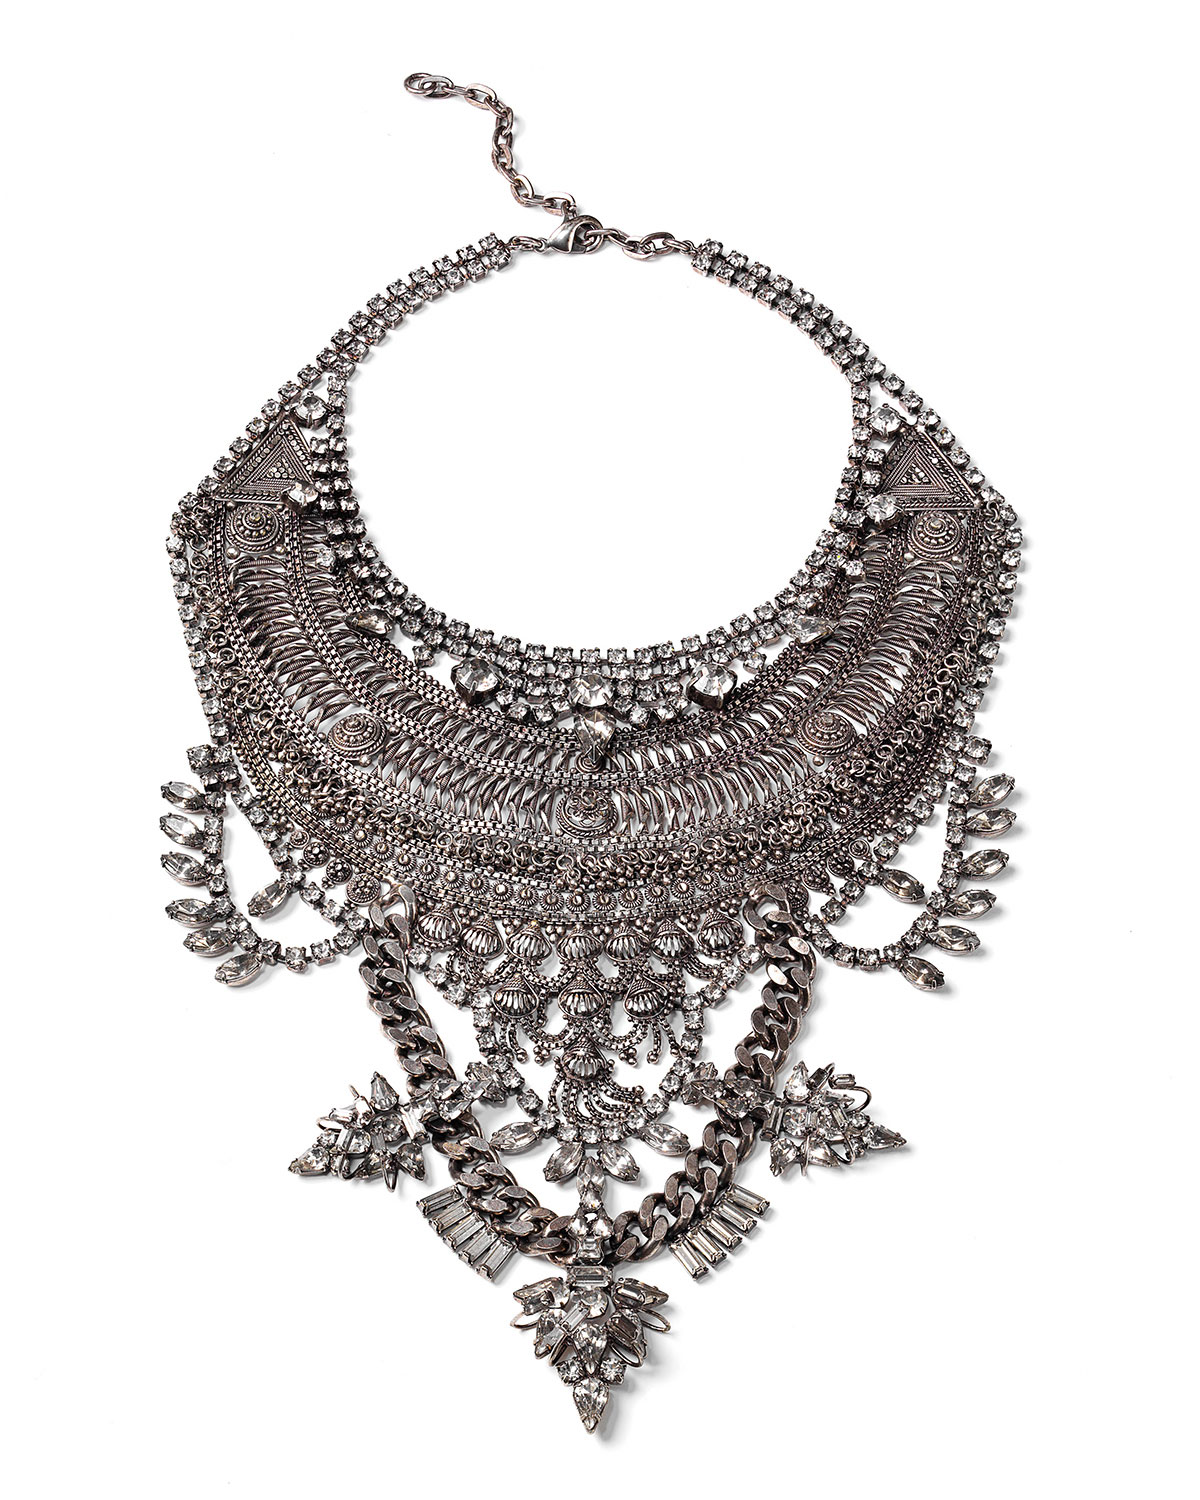 Dylanlex Gambino Crystal Statement Necklace yOi3gQsy